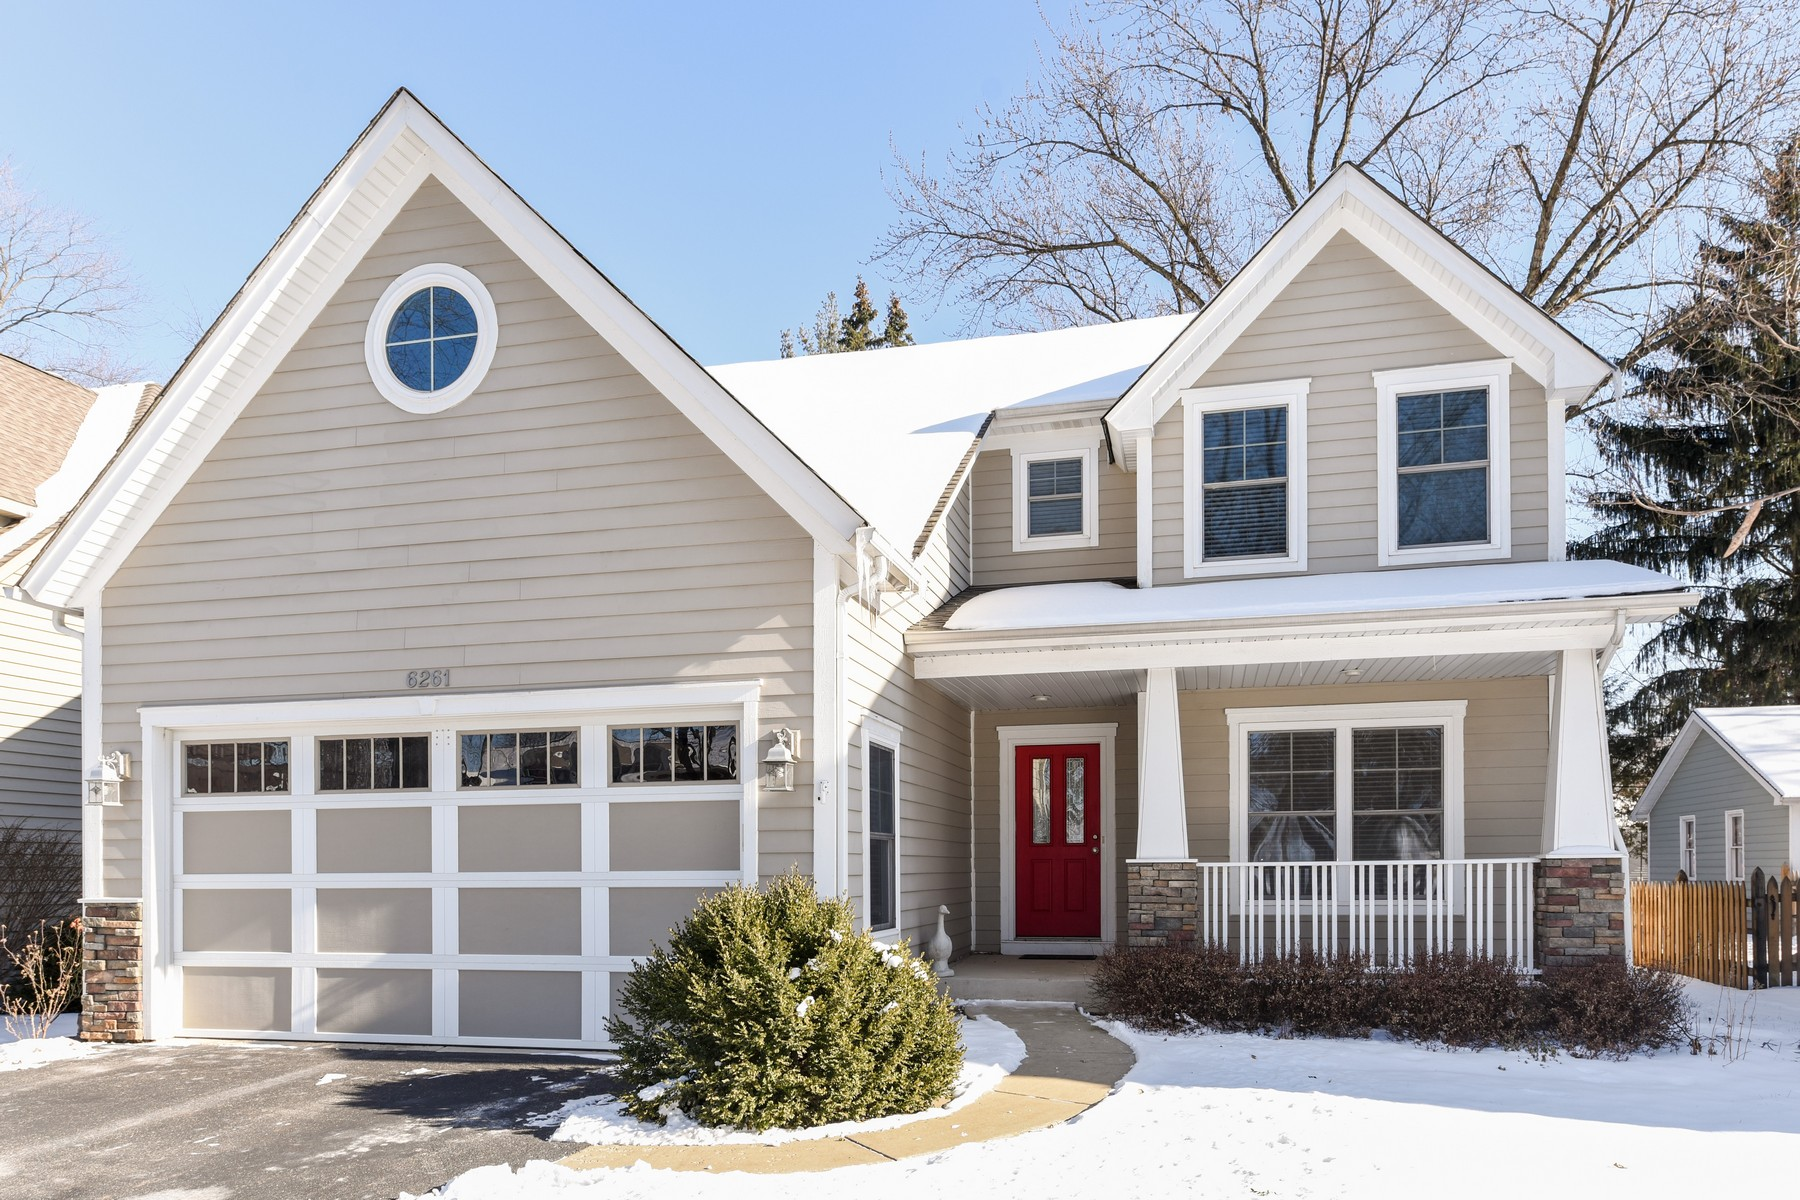 Single Family Home for Sale at Great Family Home 6261 Janes Avenue Downers Grove, Illinois 60516 United States